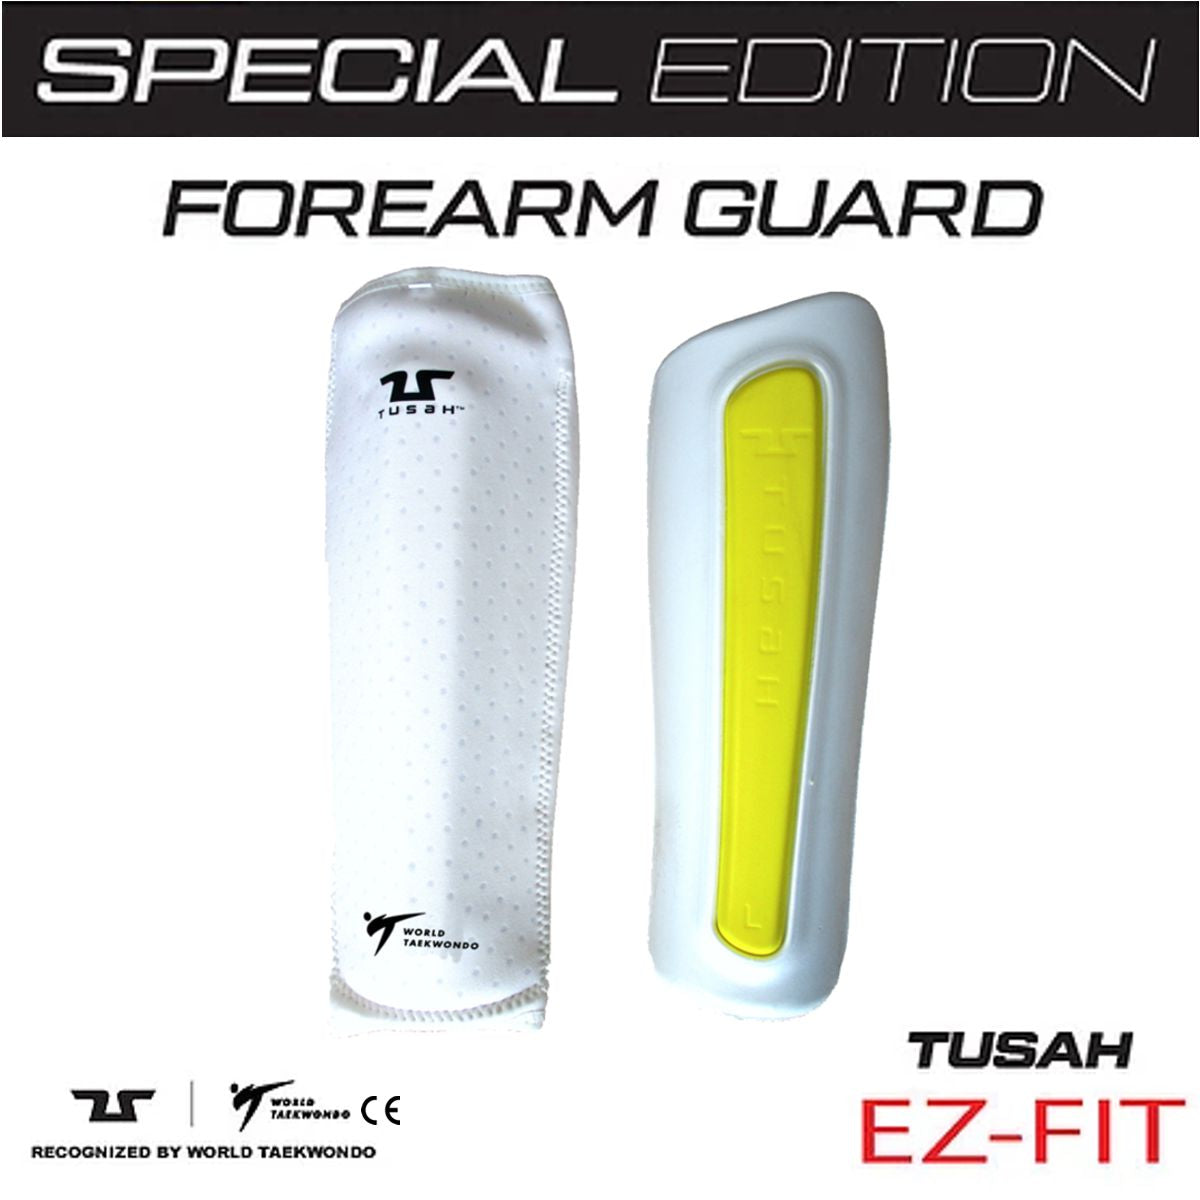 Special Edition Forearm Guard